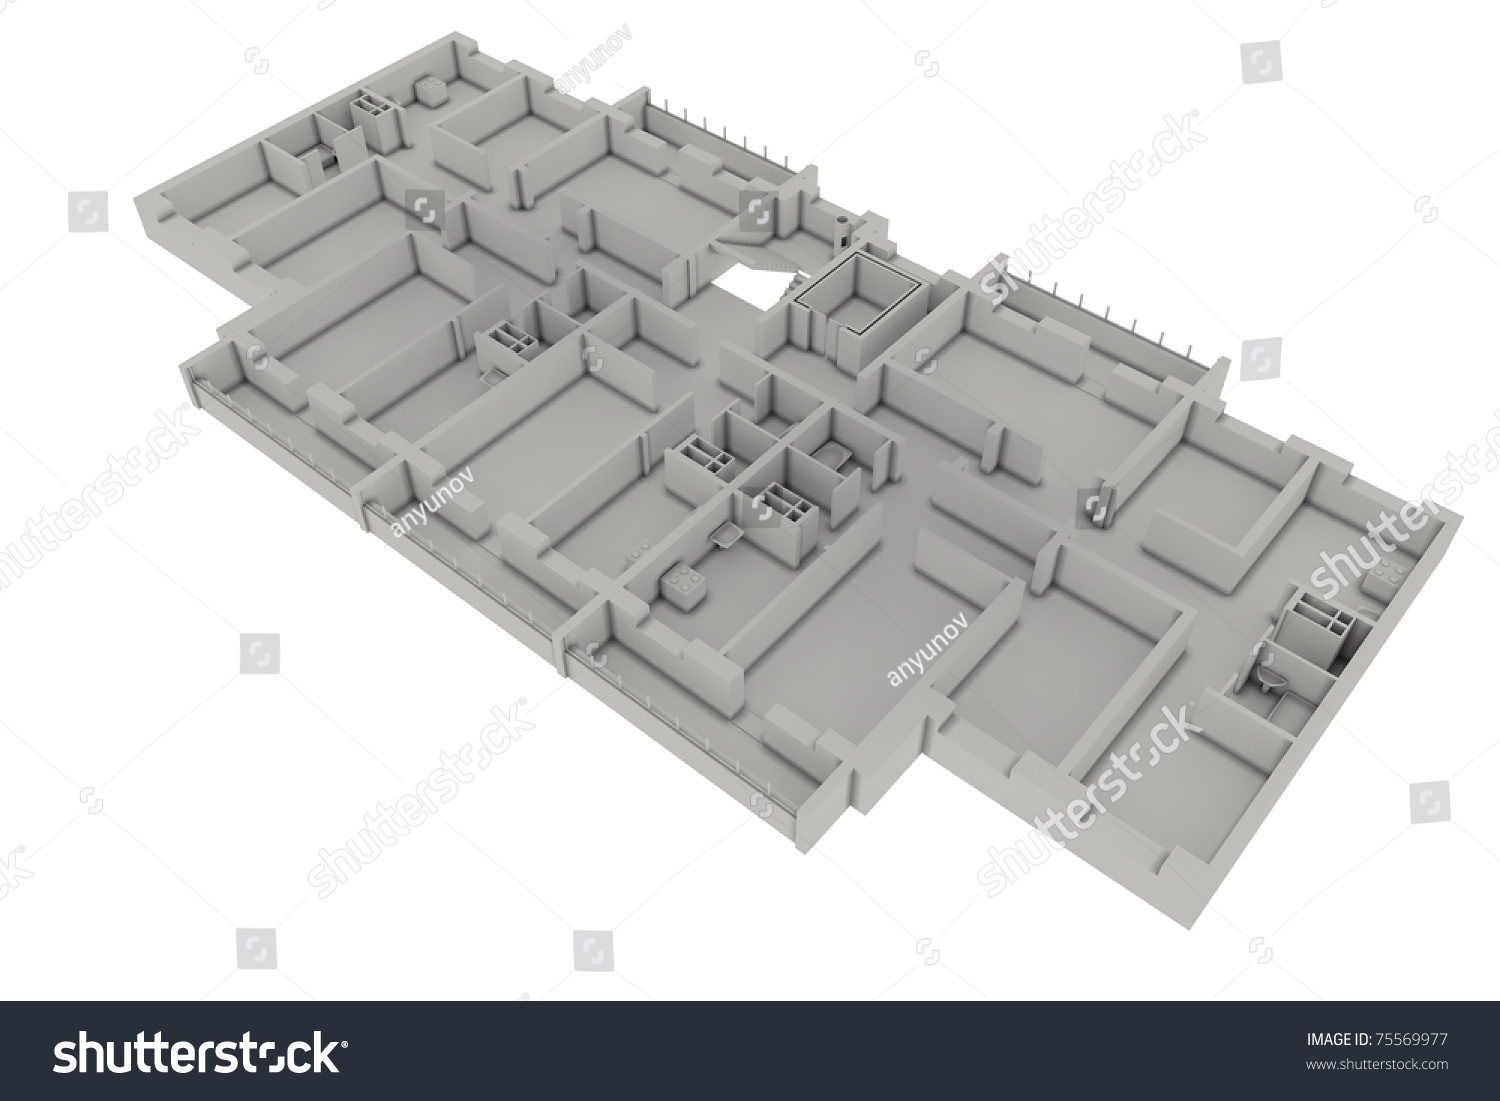 Online image photo editor shutterstock editor Edit floor plans online